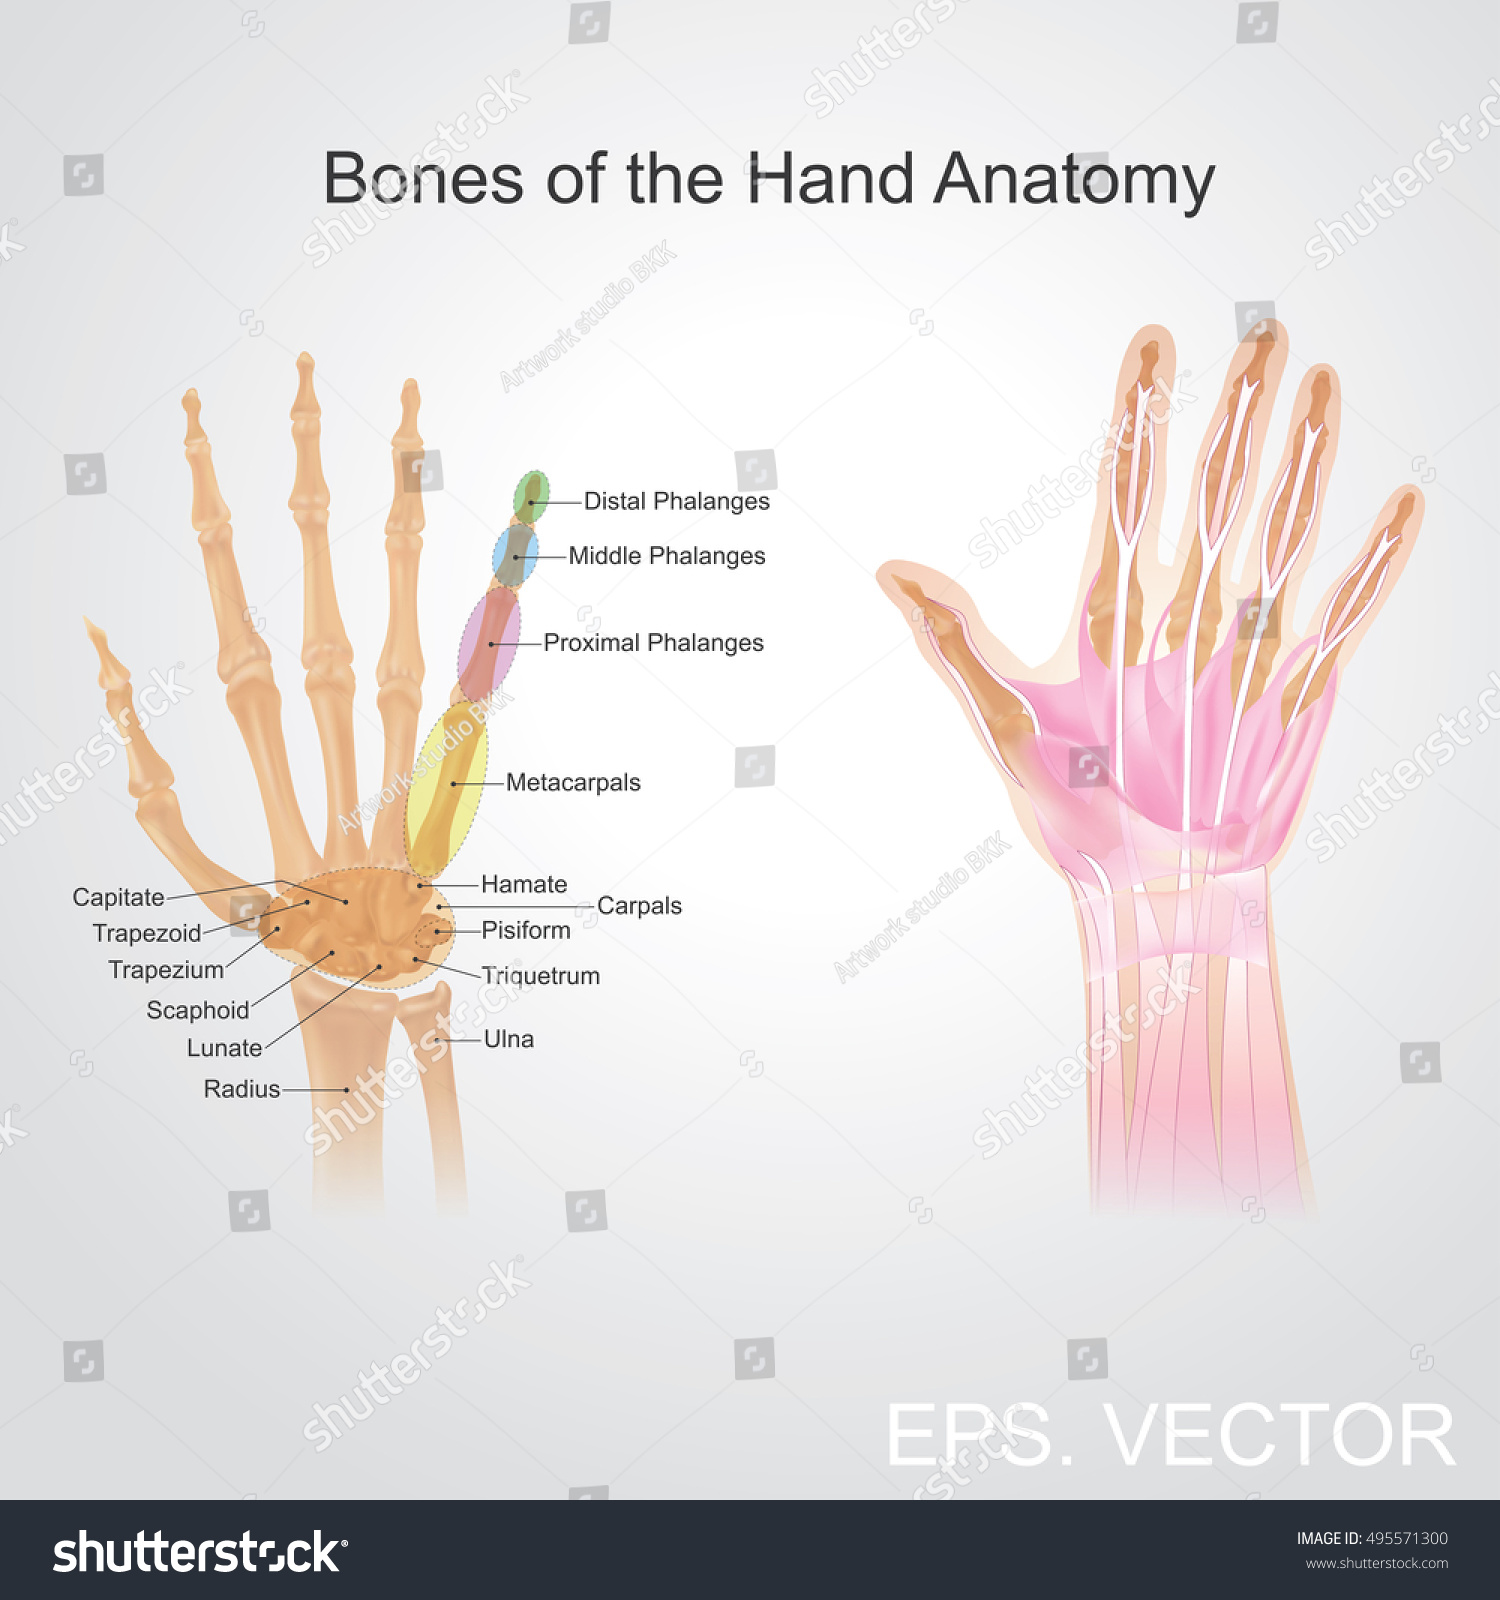 Anatomy Human Hand Has Five Fingers Stock Photo (Photo, Vector ...